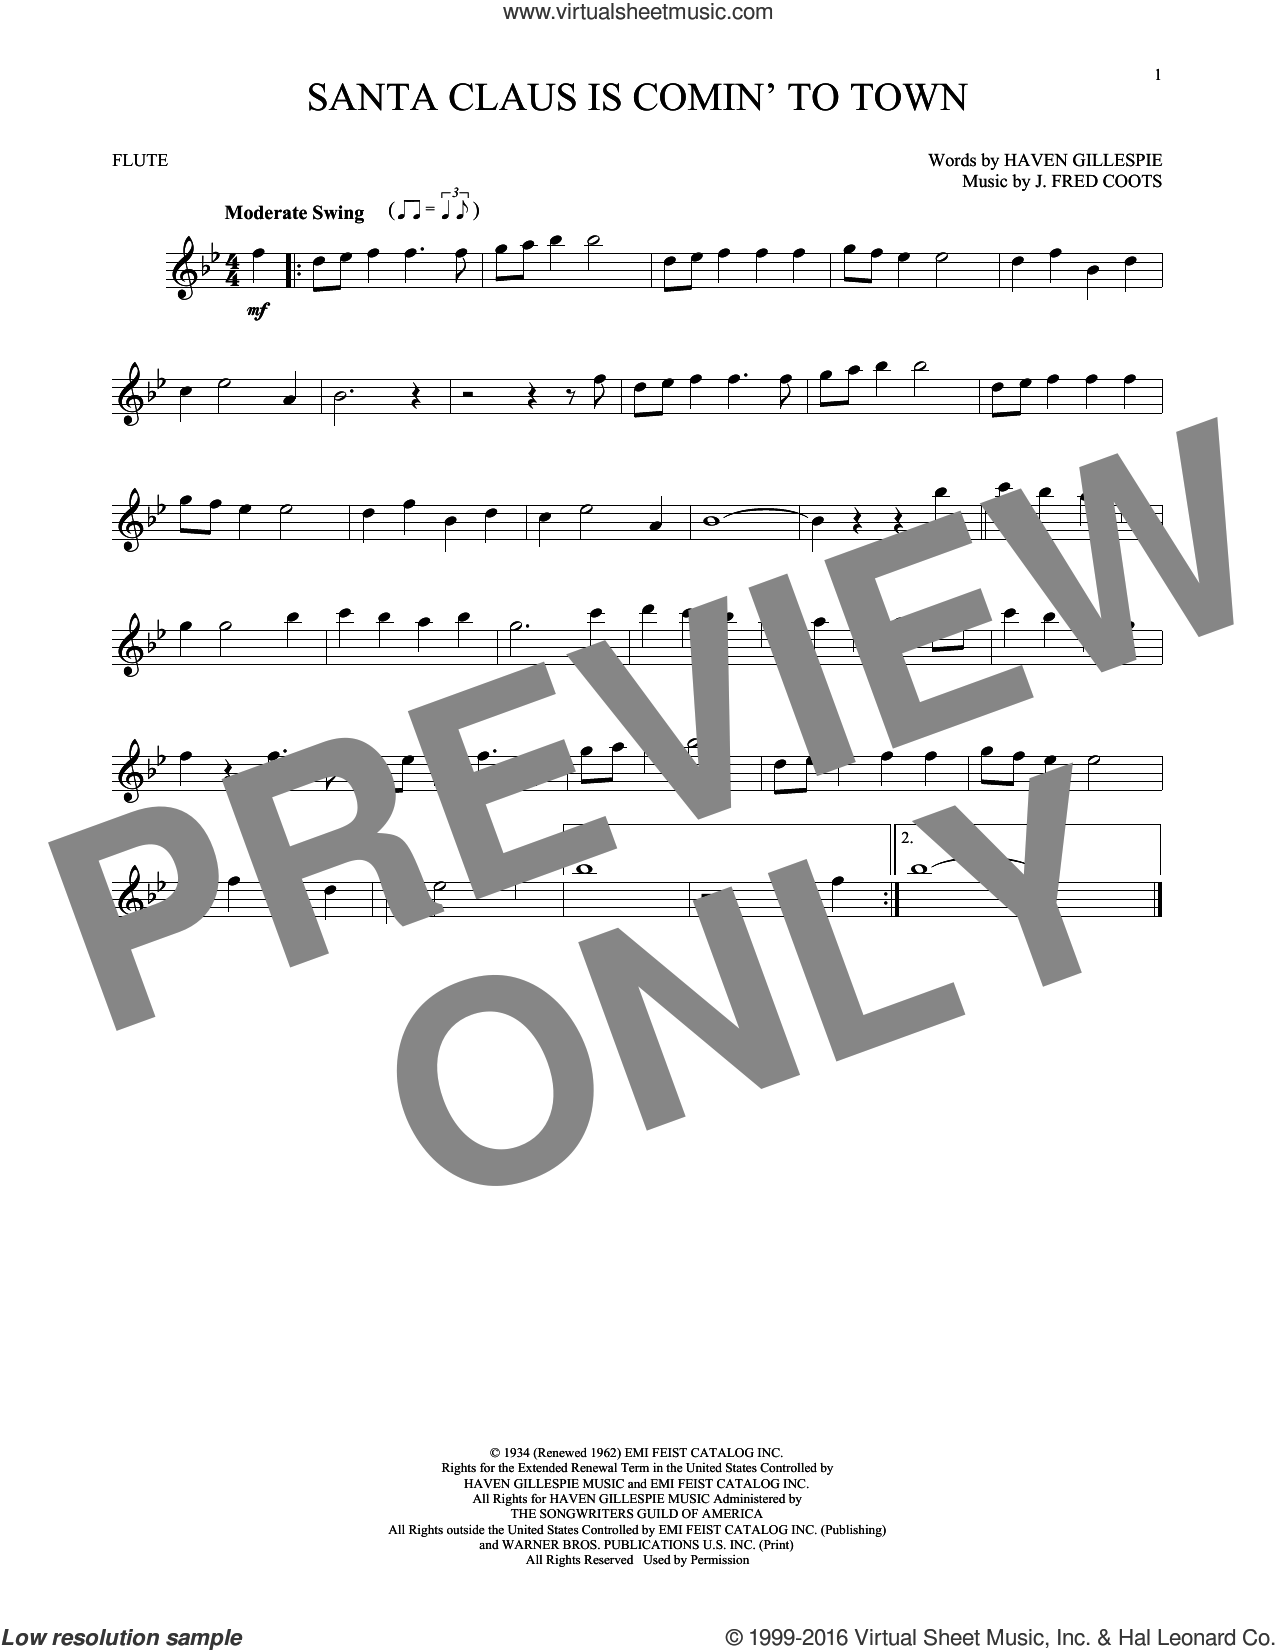 Santa Claus Is Comin' To Town sheet music for flute solo by J. Fred Coots and Haven Gillespie, intermediate skill level